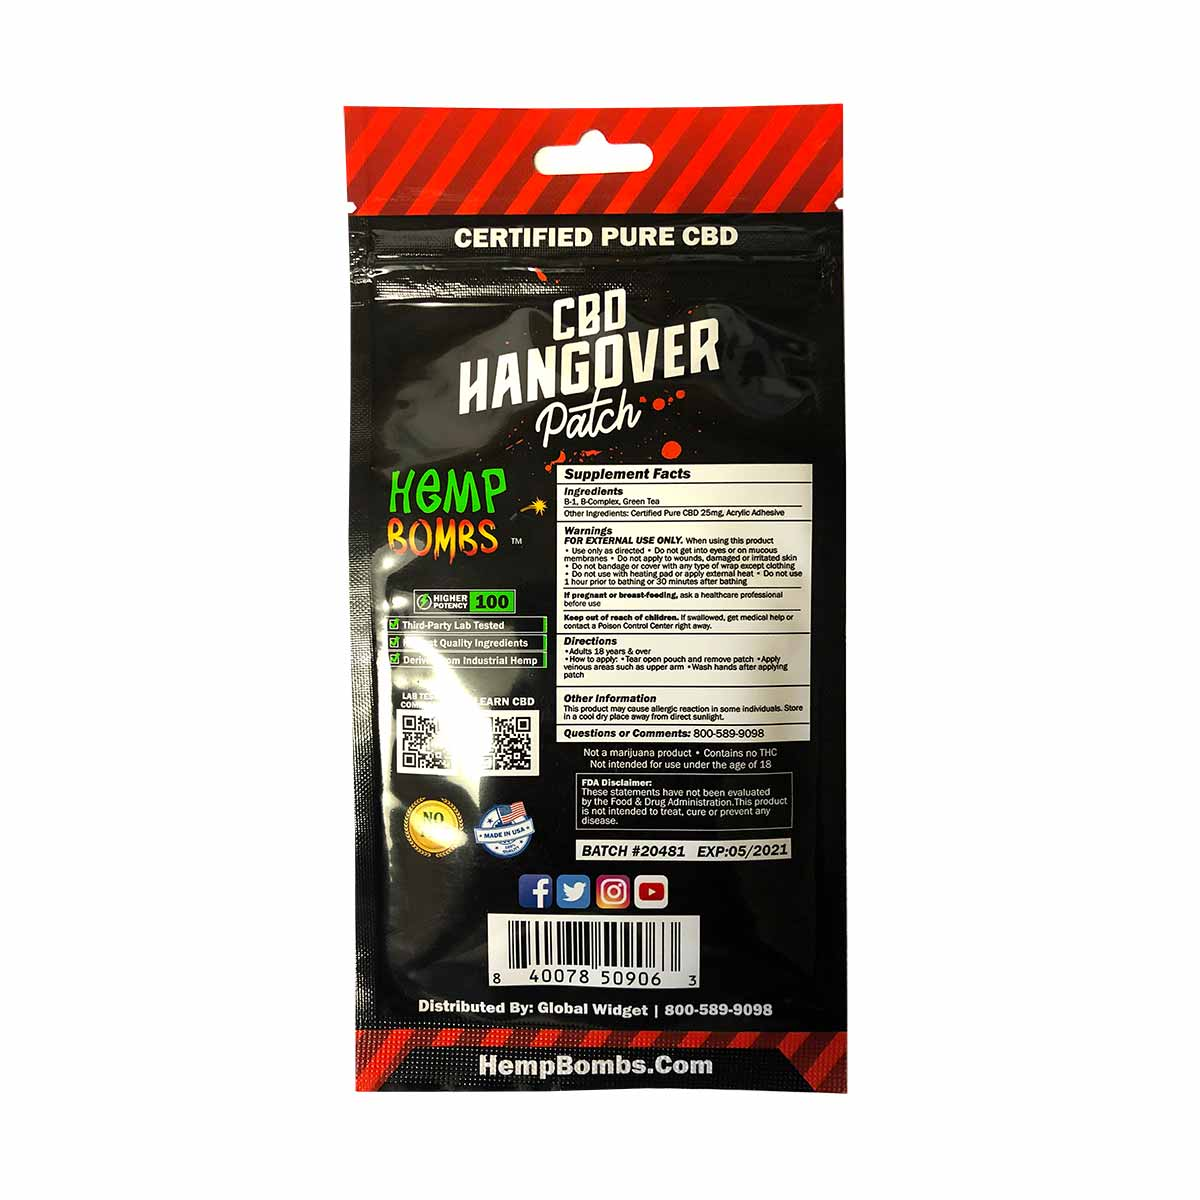 HempBombs, CBD Hangover Patches, 4 count, 100mg of CBD